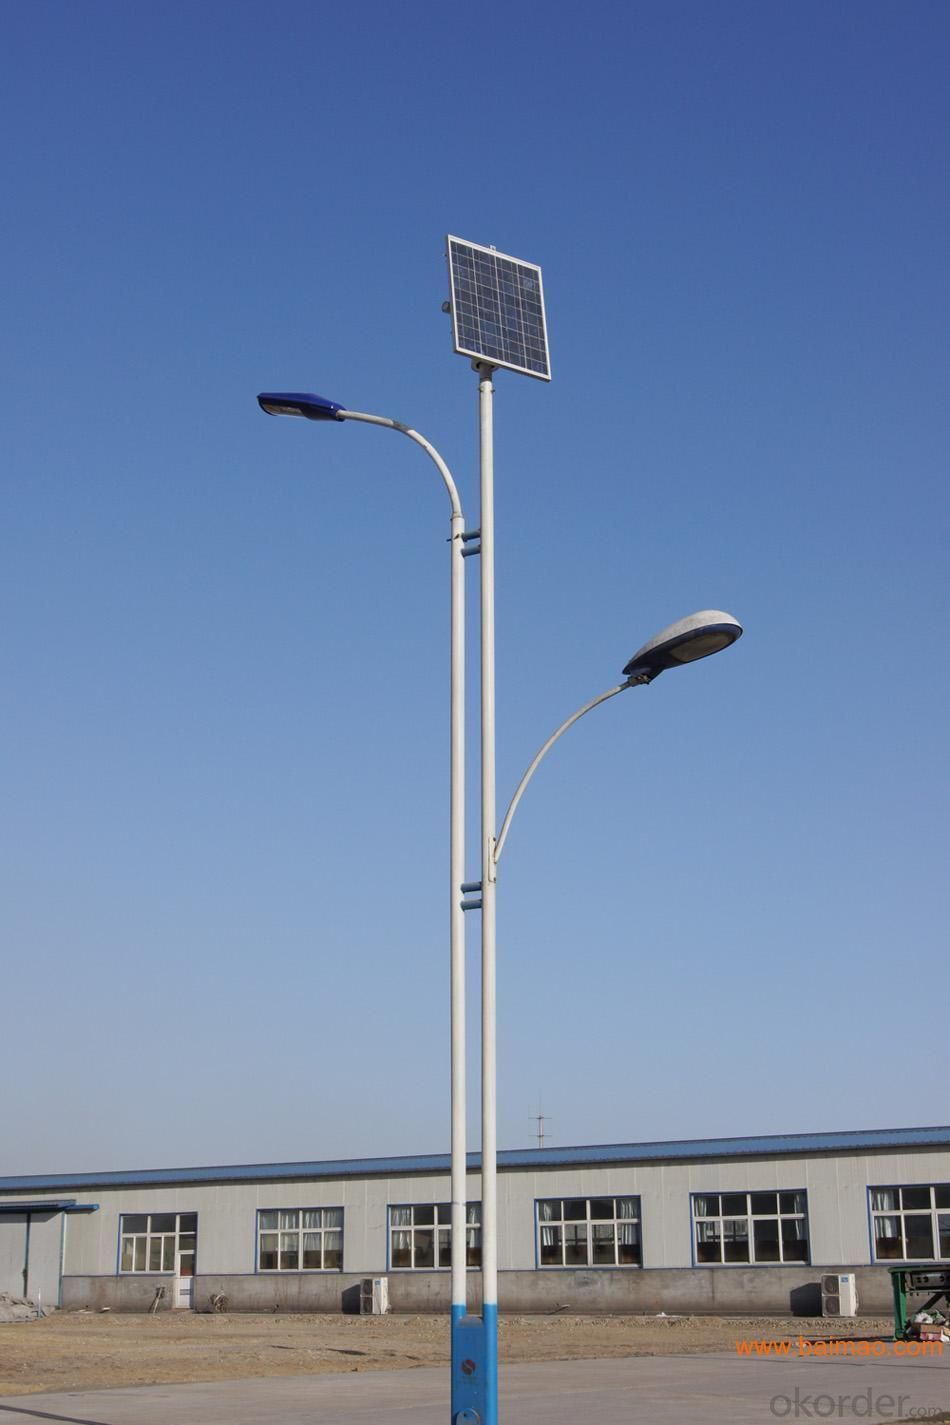 Solar street lamps solar street light environmental friendly, cost saving,